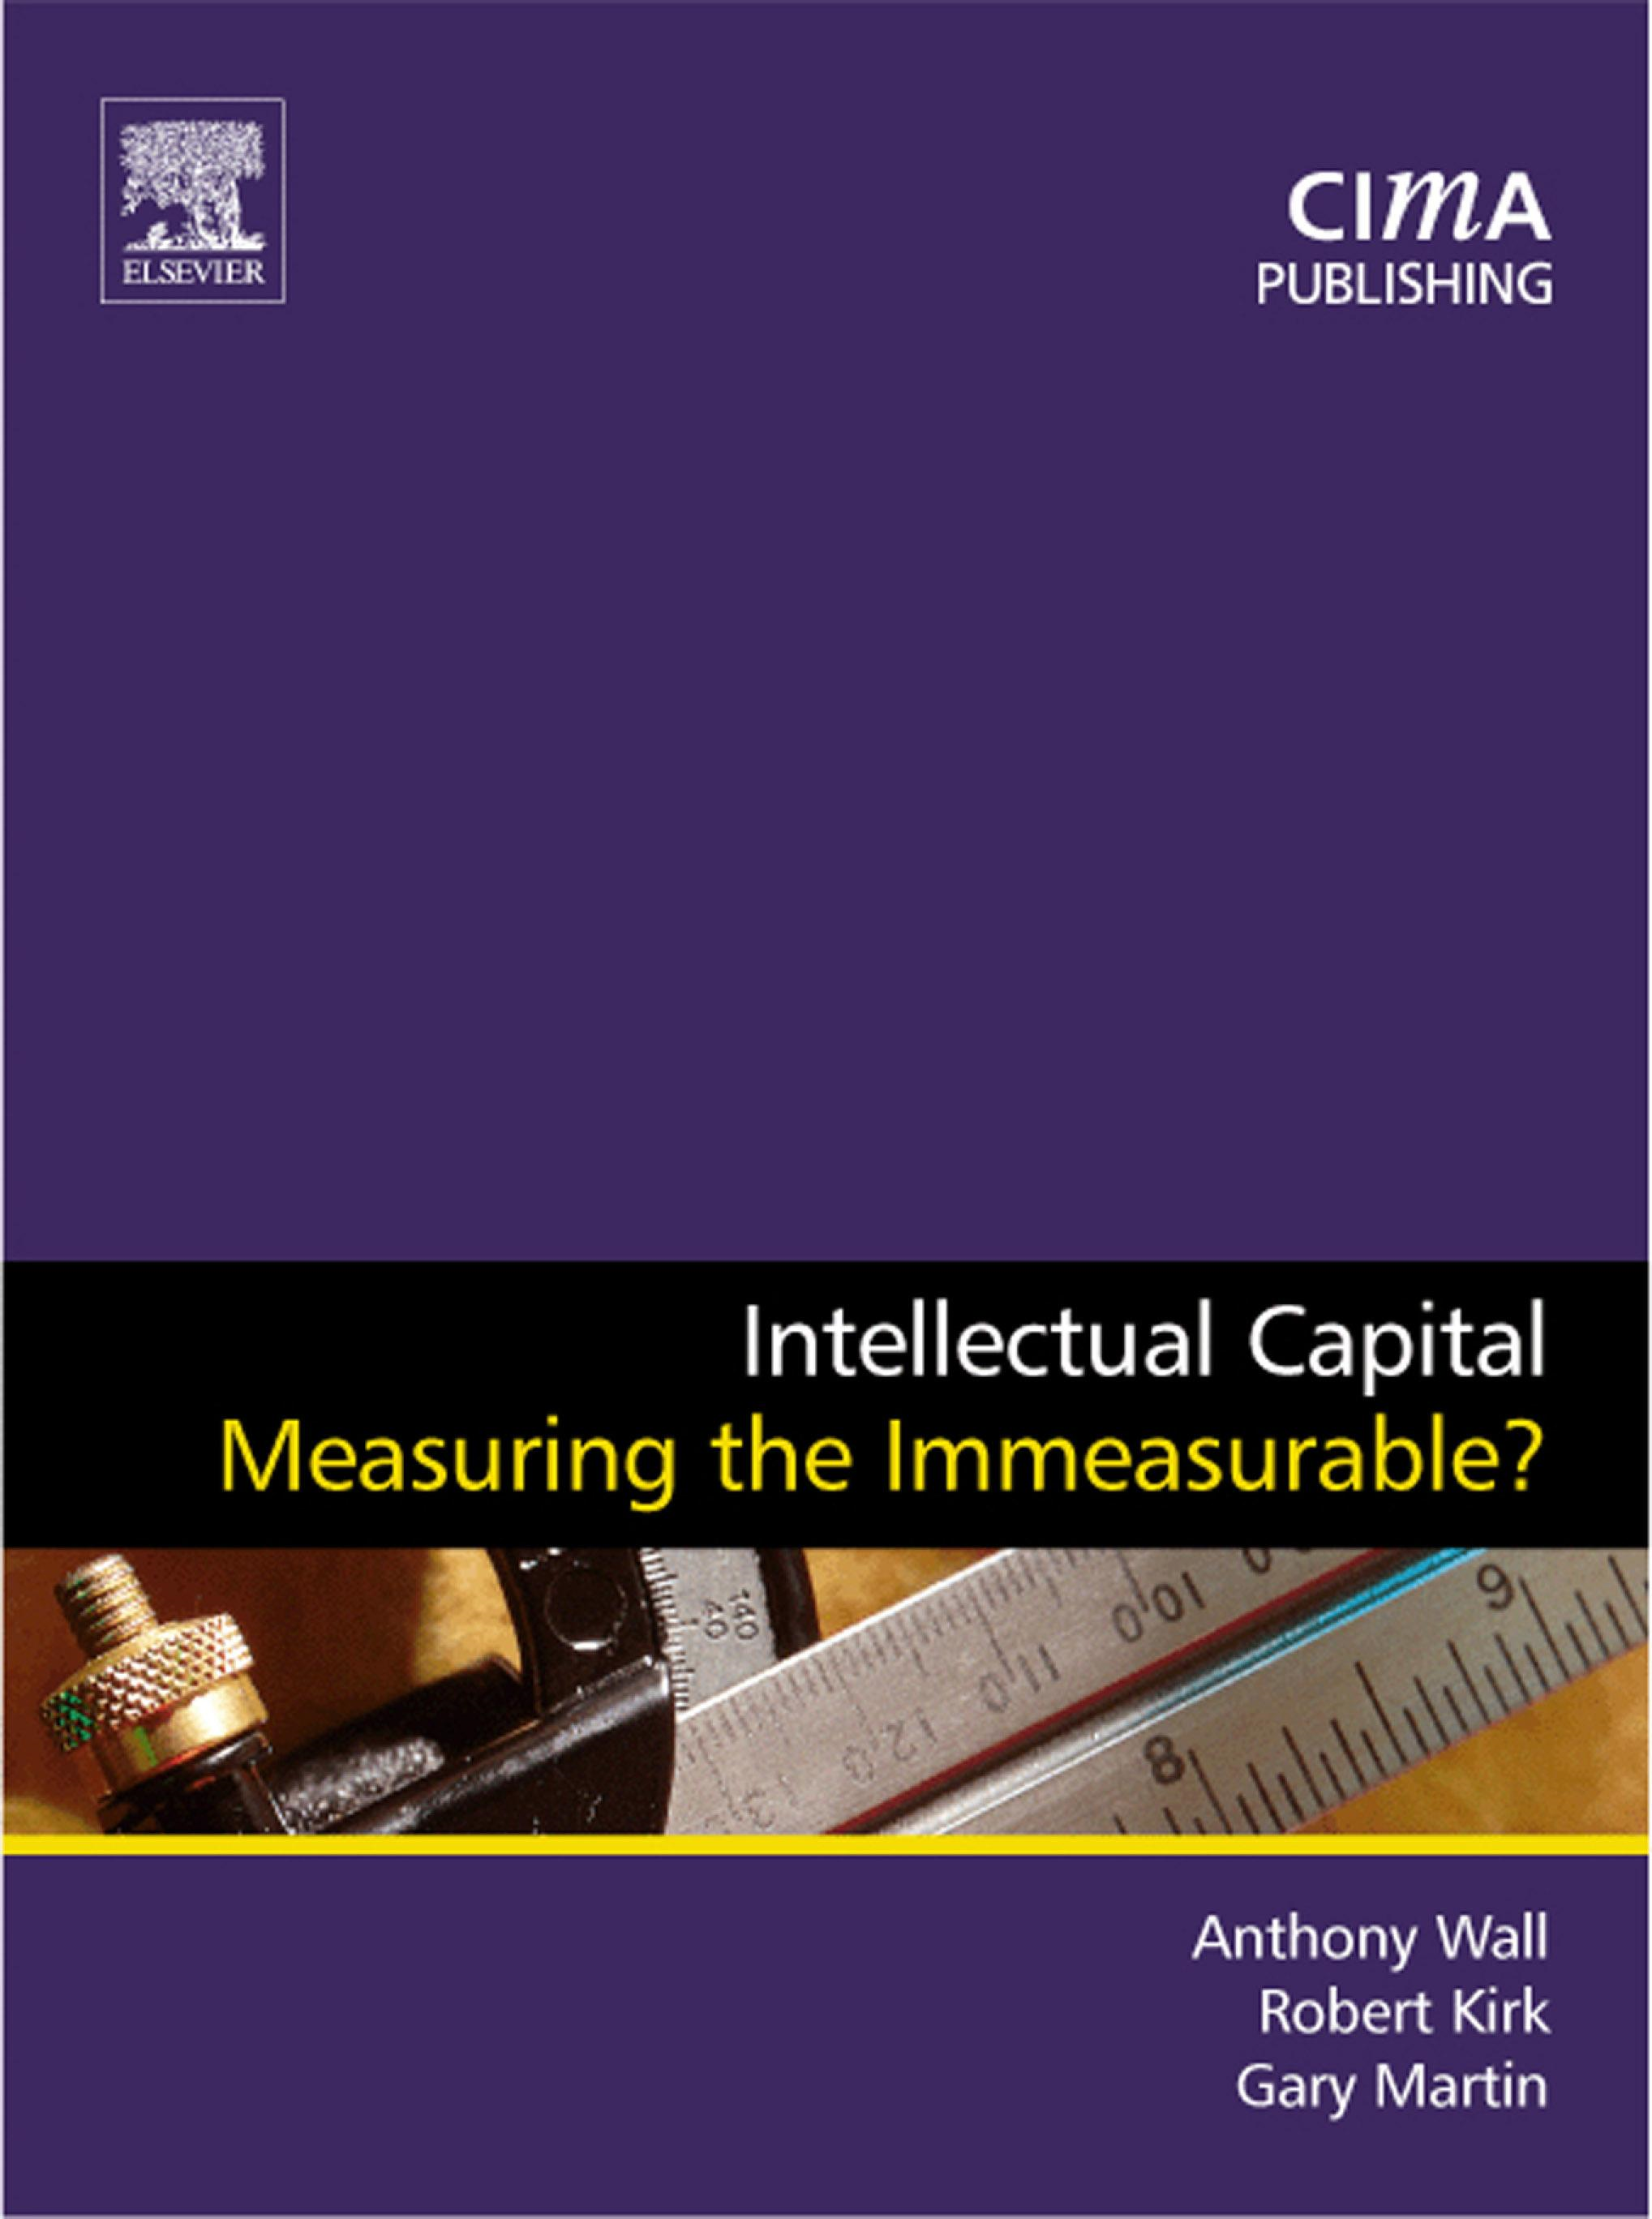 Intellectual Capital: Measuring the Immeasurable?